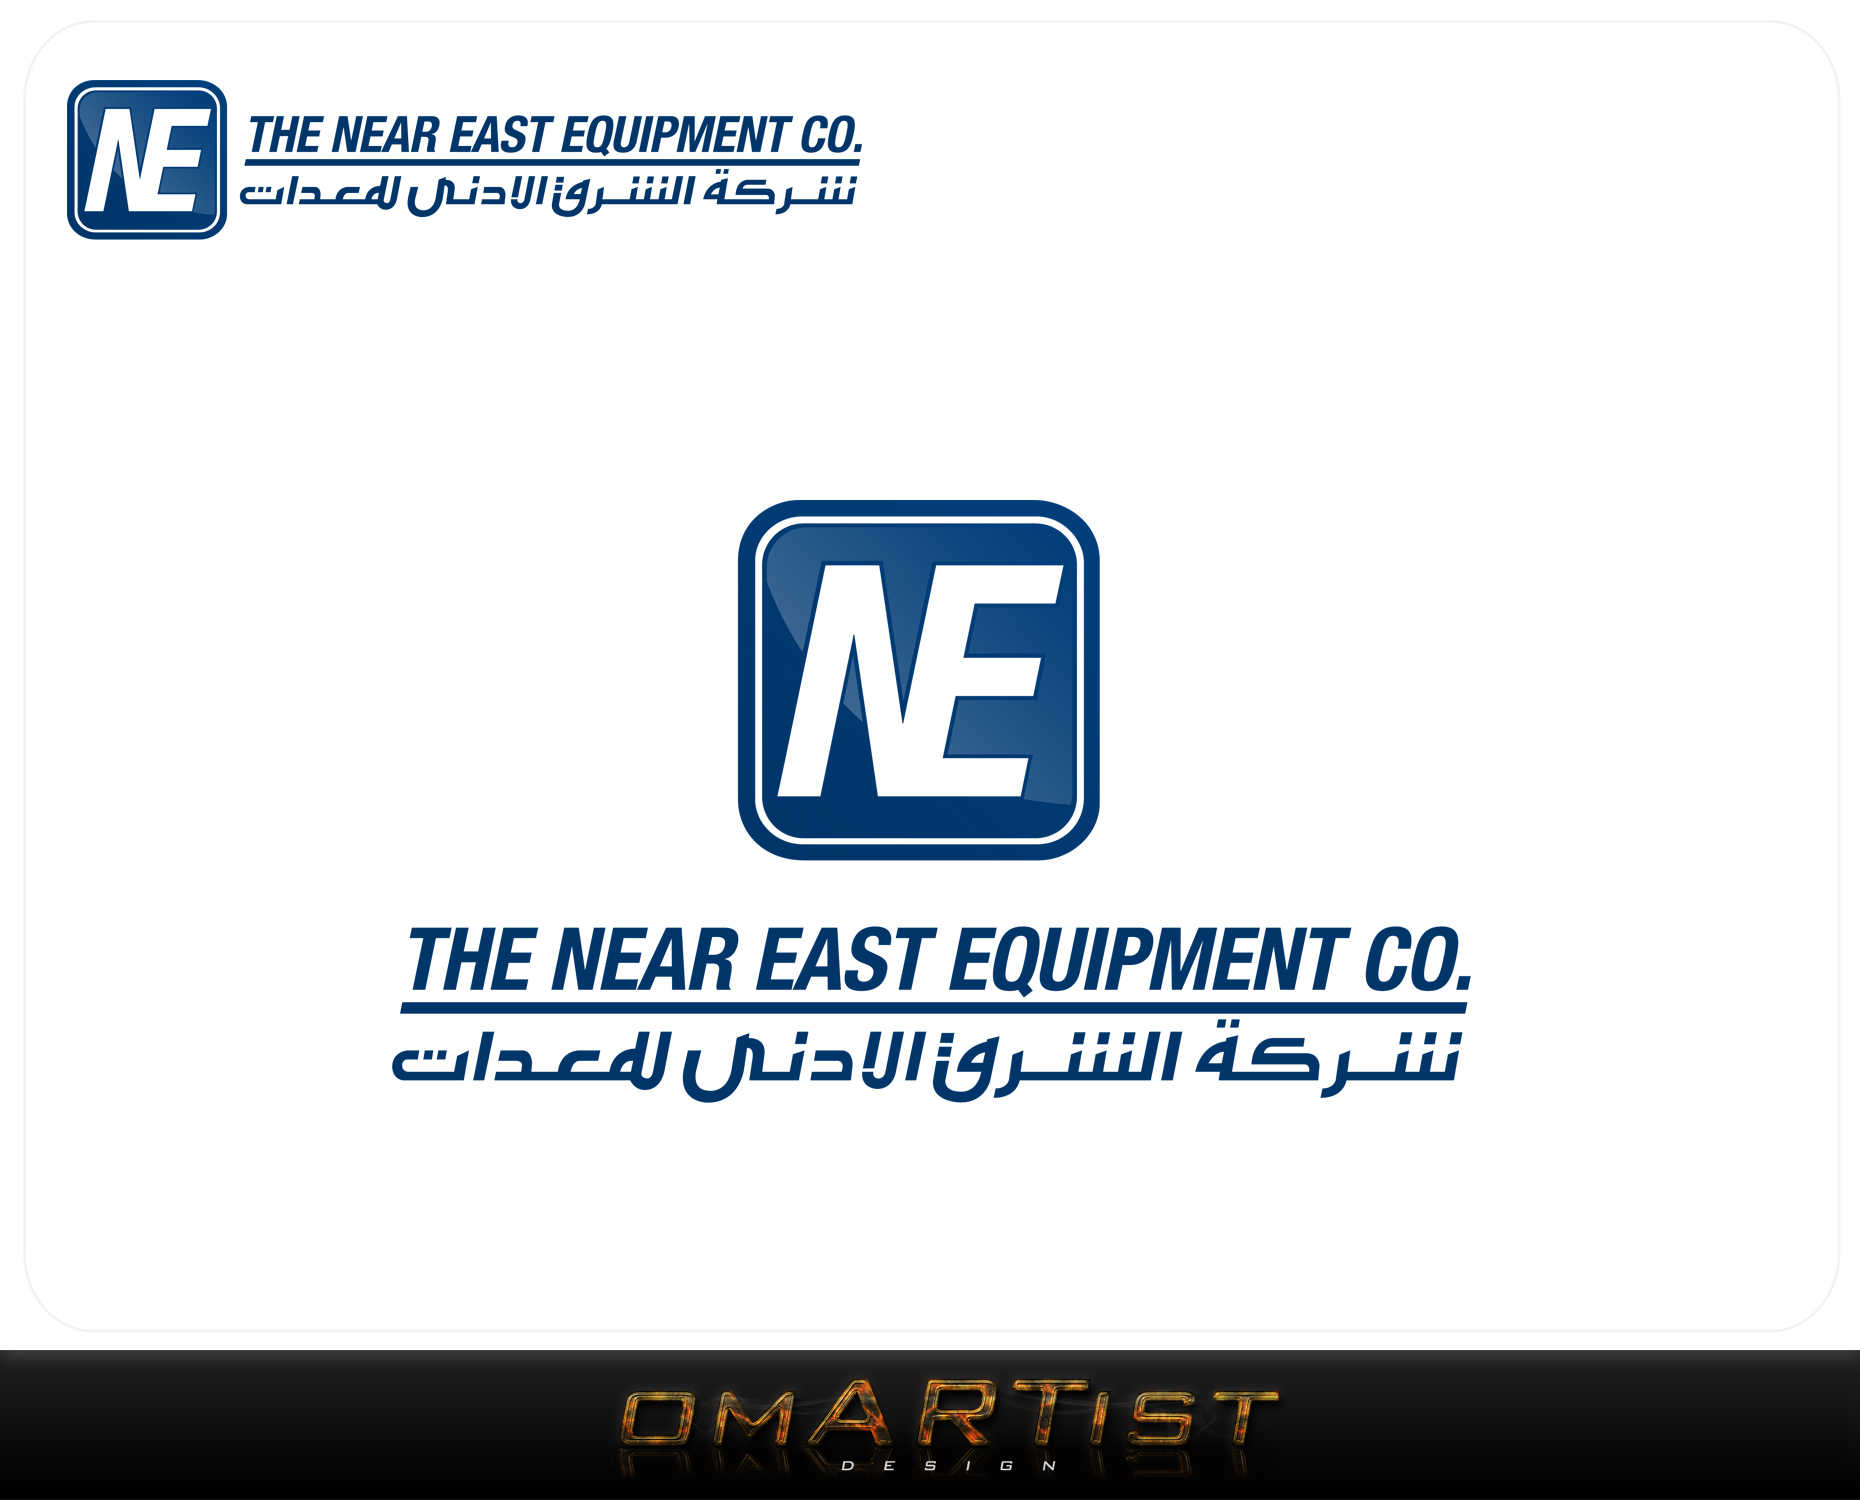 Logo Design by omARTist - Entry No. 115 in the Logo Design Contest Imaginative Logo Design for The Near East Equipment Co..